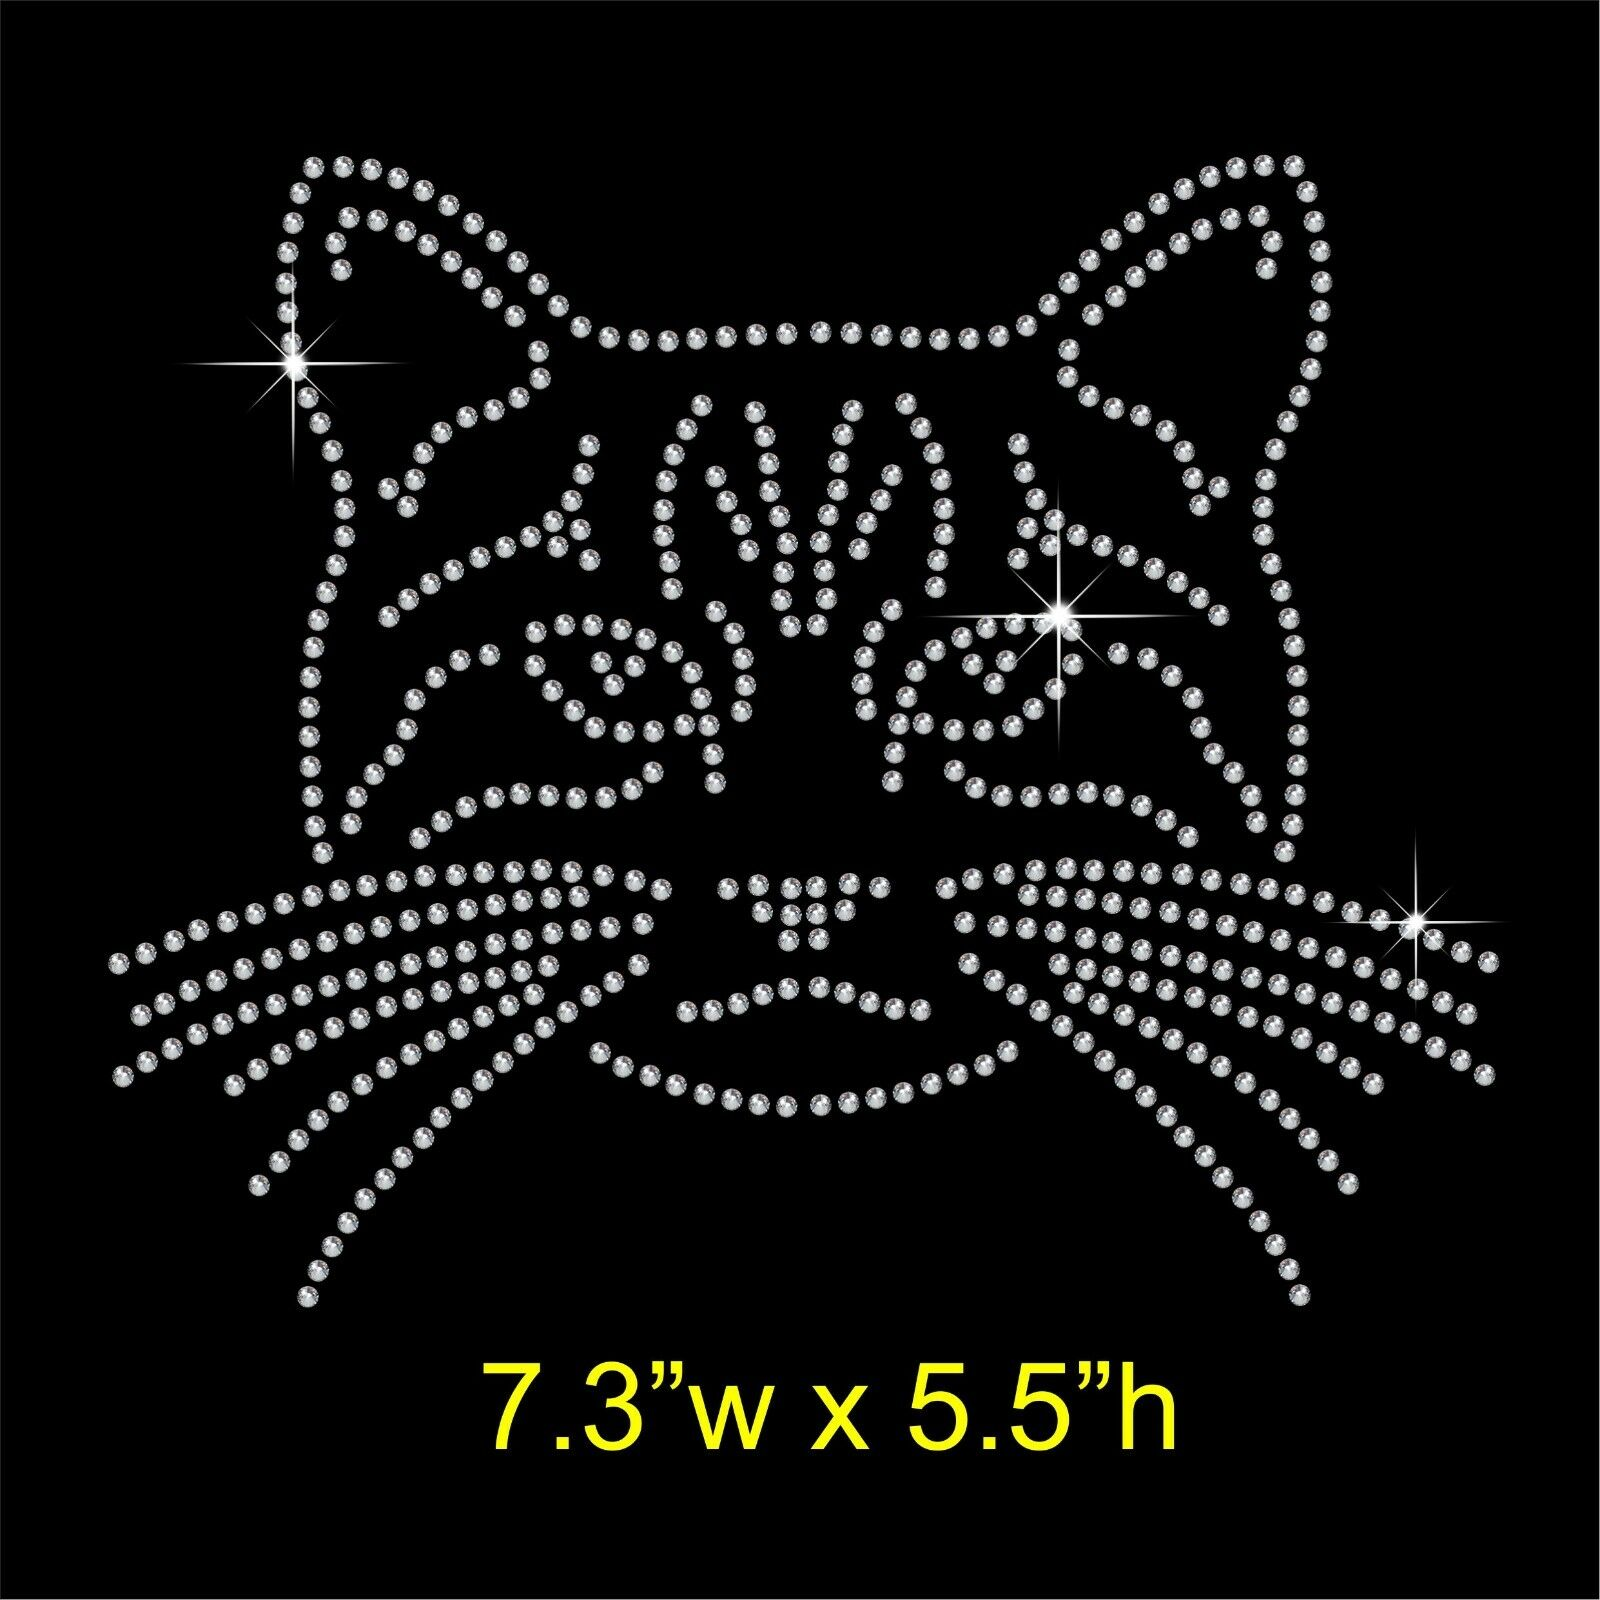 2pc lot Cat head sticker transfers design iron on transfer patches hot fix rhinestone transfer motifs fixing rhinestones in Rhinestones from Home Garden